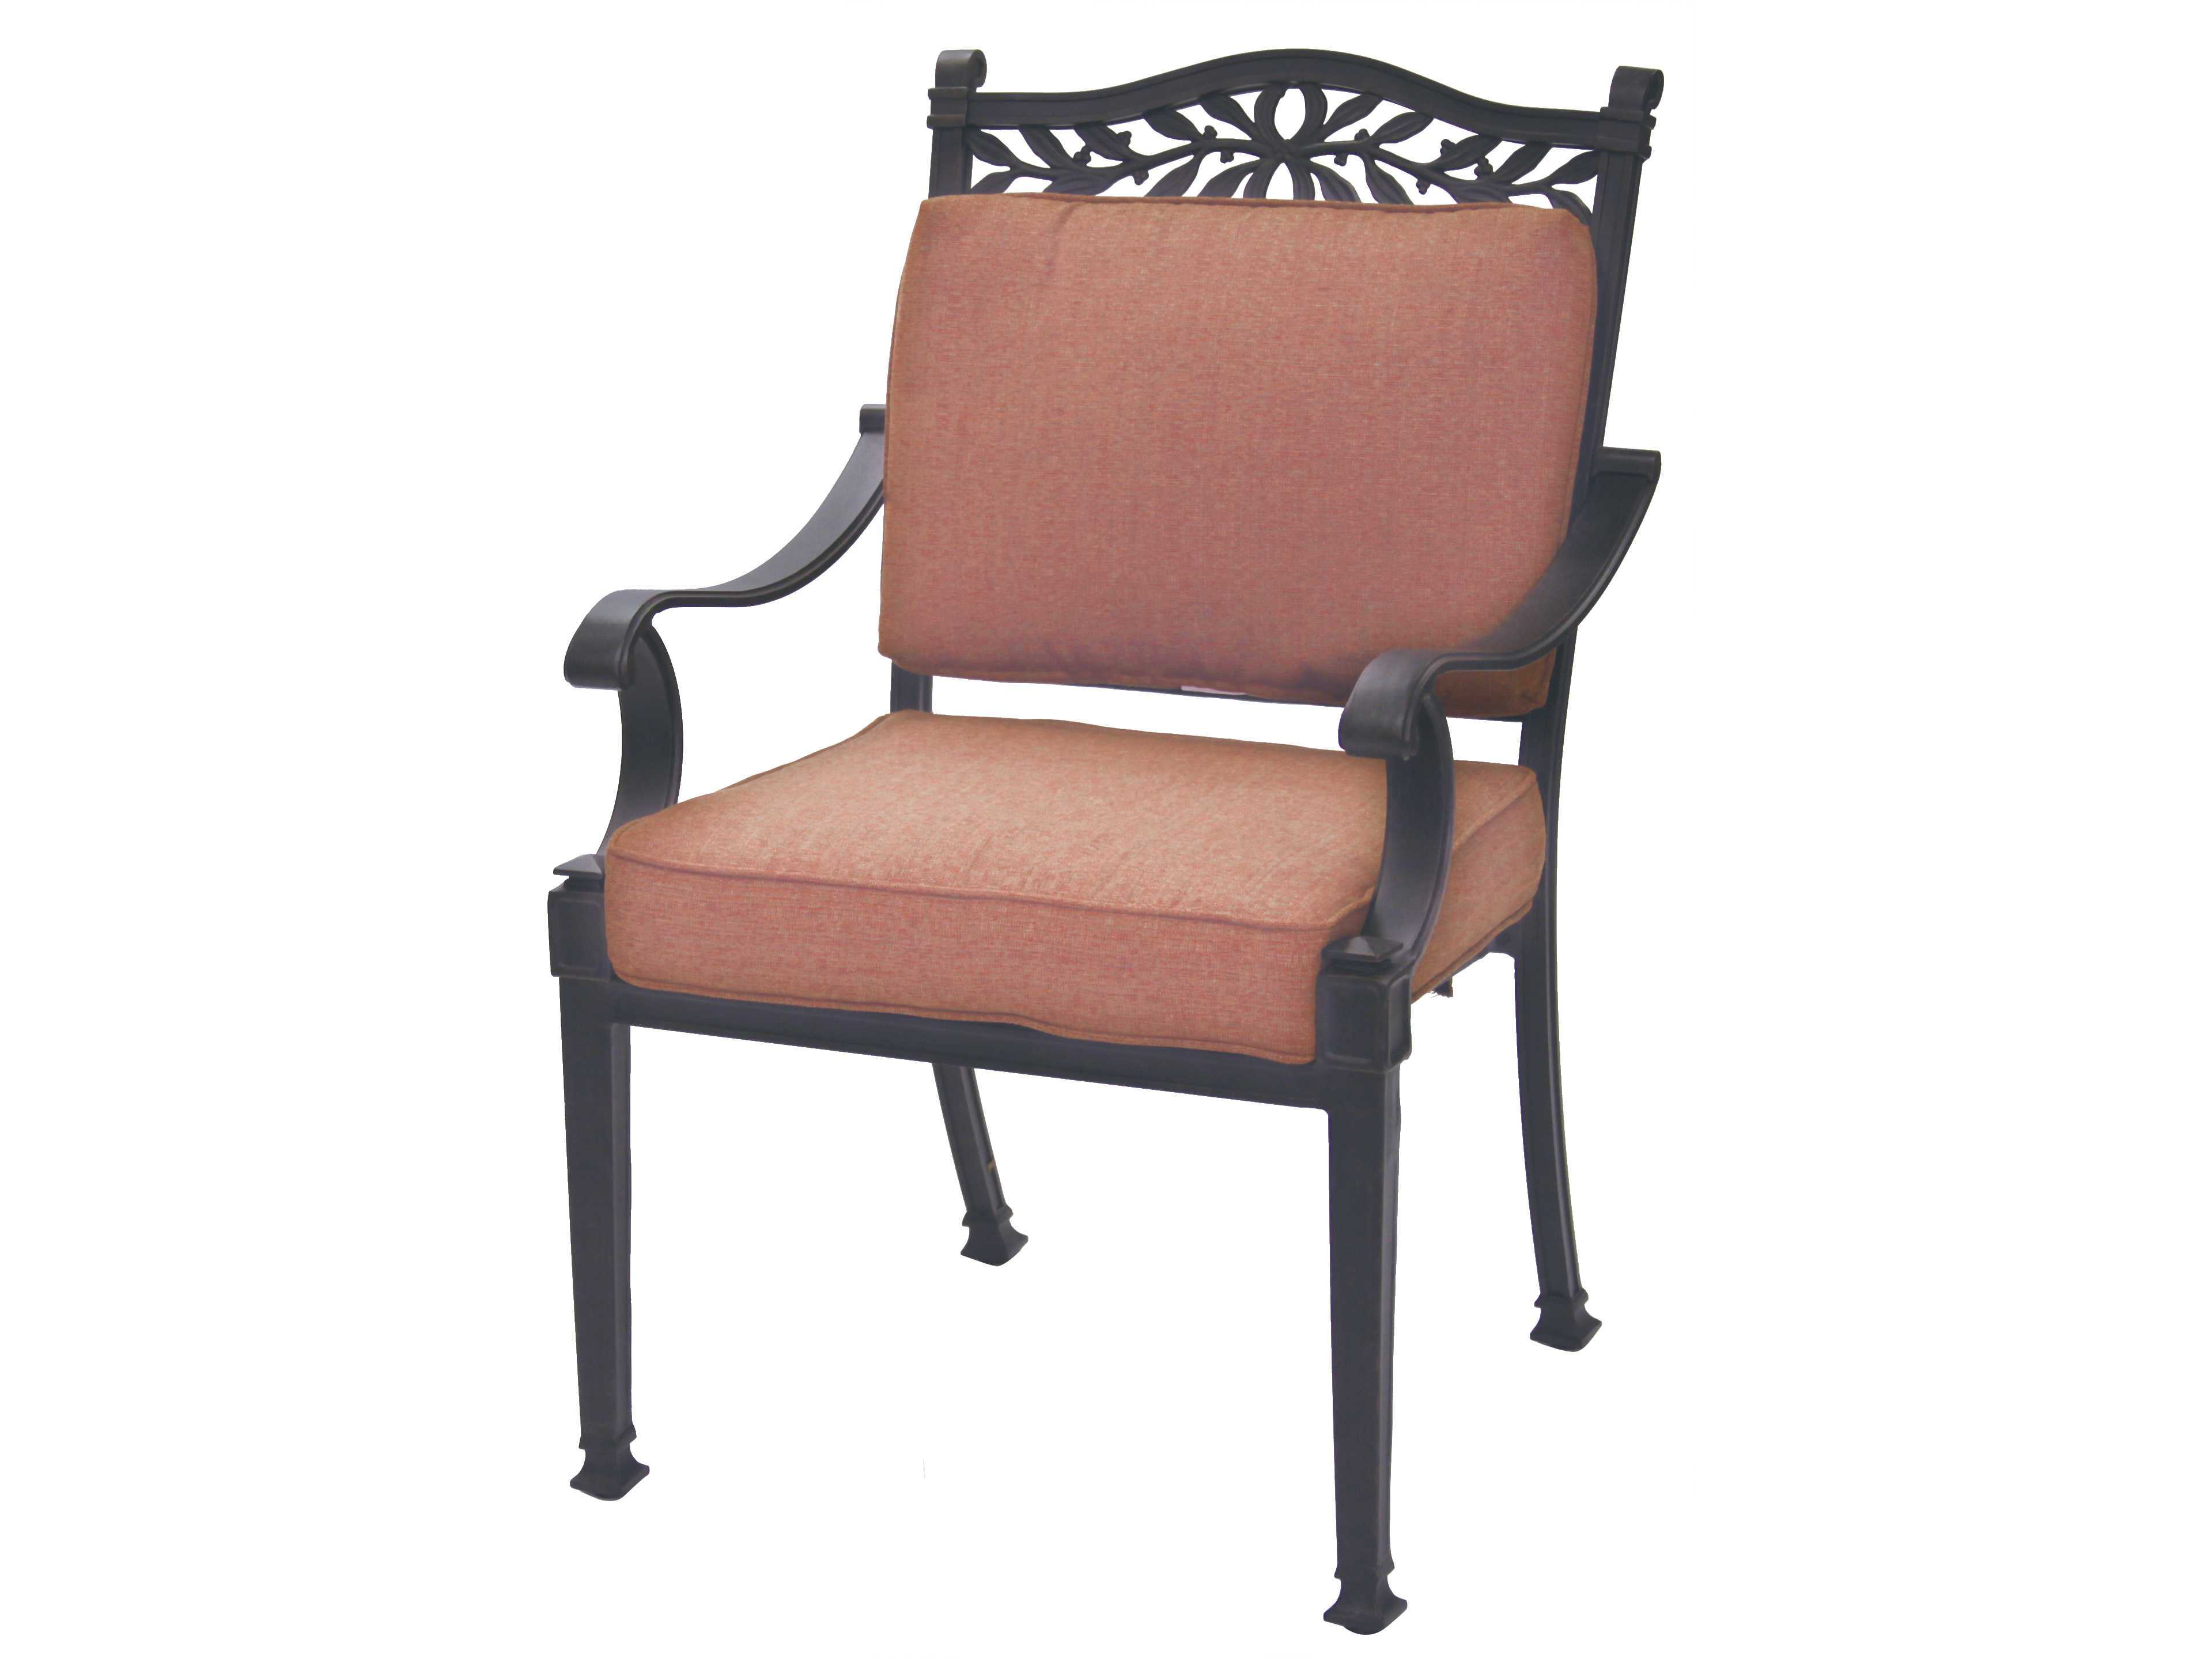 outdoor aluminum chairs where to buy chair covers in cape town darlee living standard charleston cast